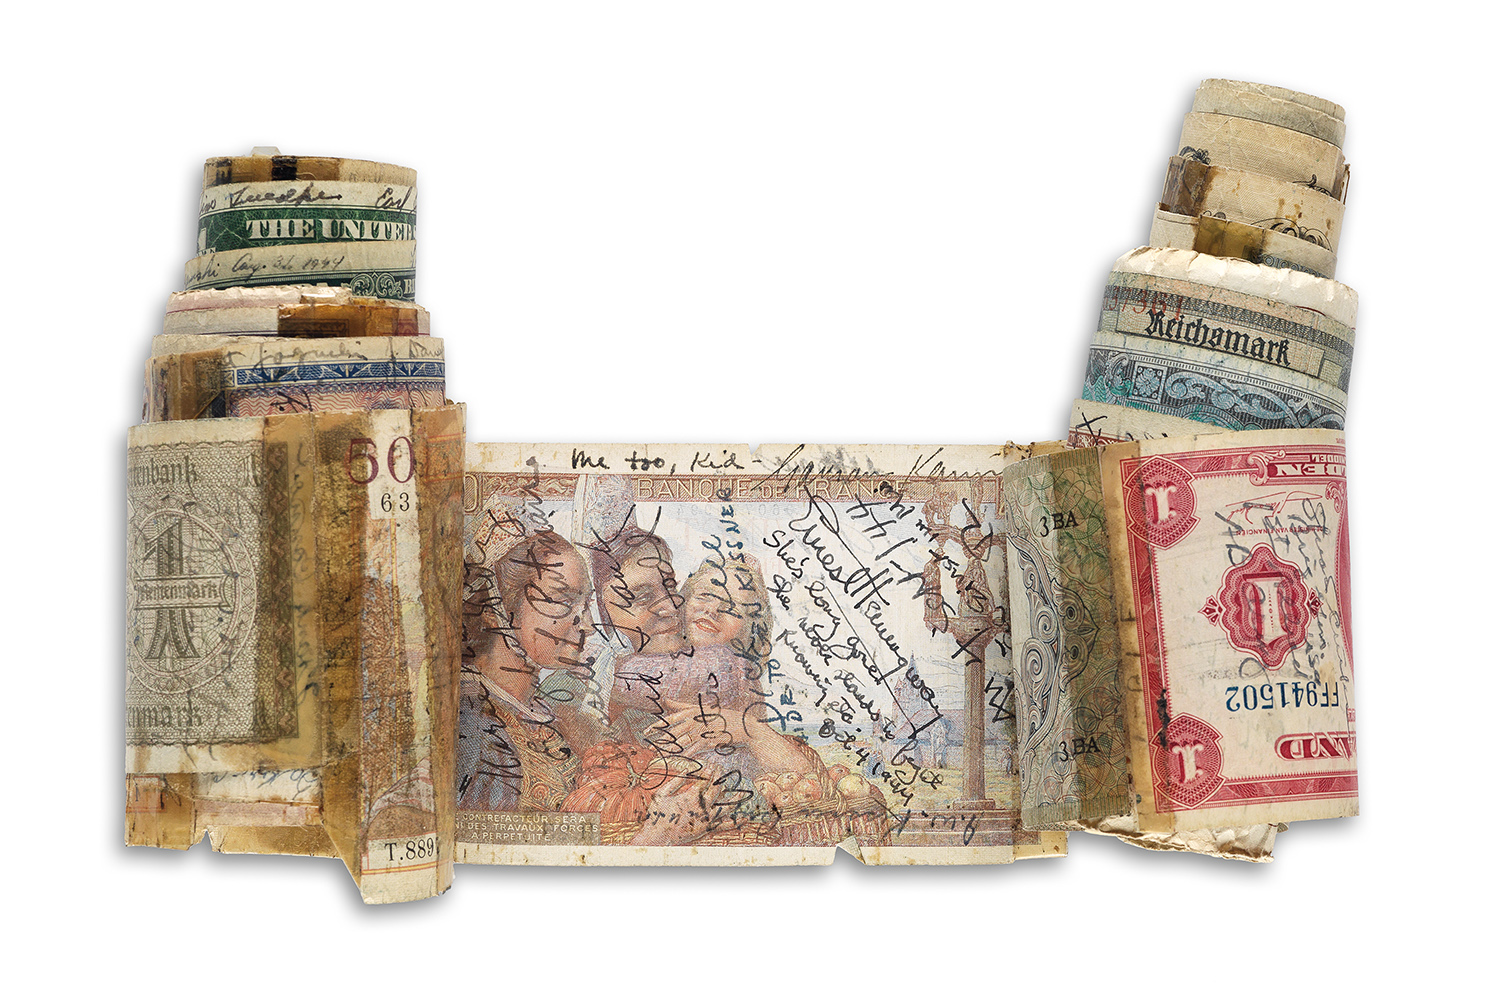 A short snorter--a collection of paper money covered with autographs--compiled by Marlene Dietrich during World War II. It comes directly from Dietrich's descendants to Swann Auction Galleries, which estimates it at $3,000 to $5,000.